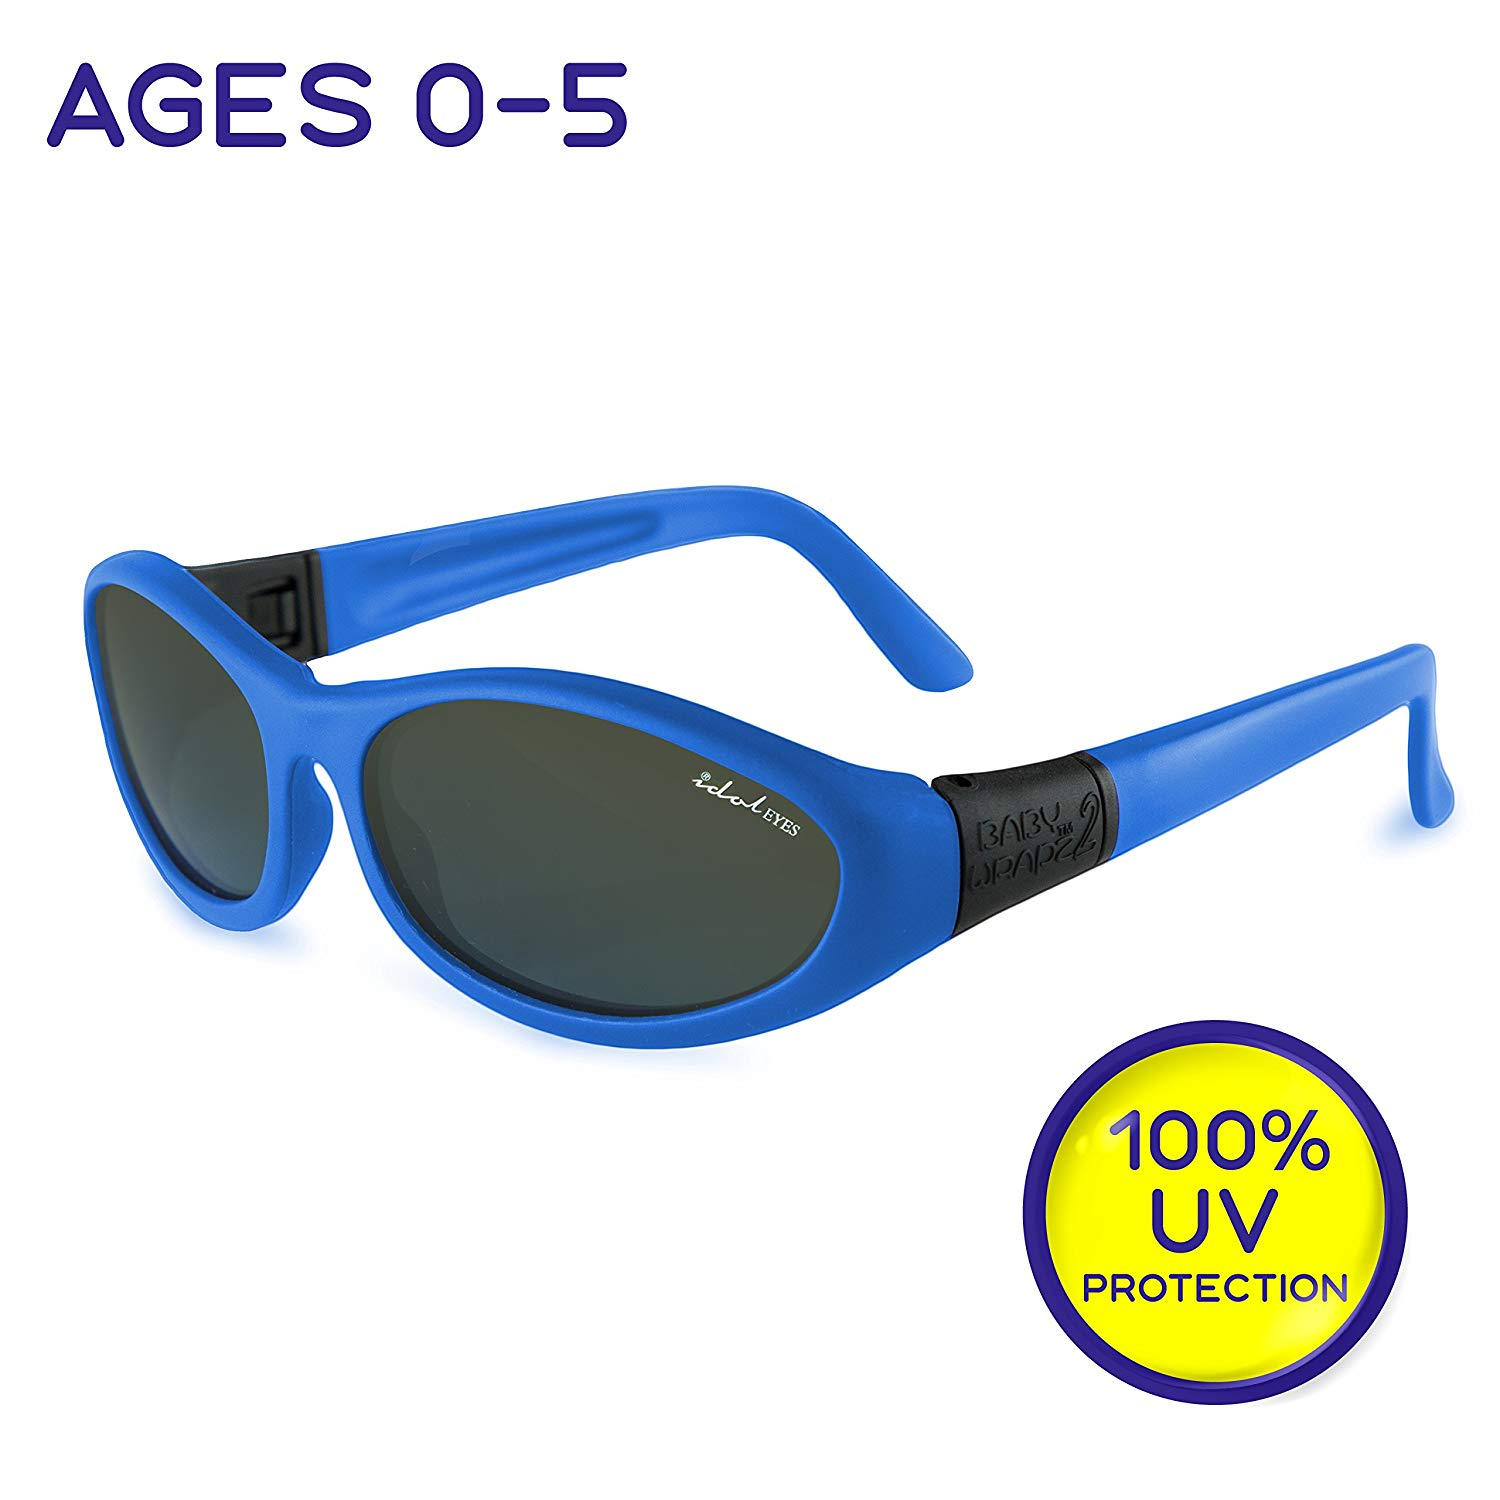 b97bb4f152f4 Get Quotations · Baby Wrapz 2 Kids Sunglasses for Kids - 100% UV Protection Baby  Sunglasses with Strap